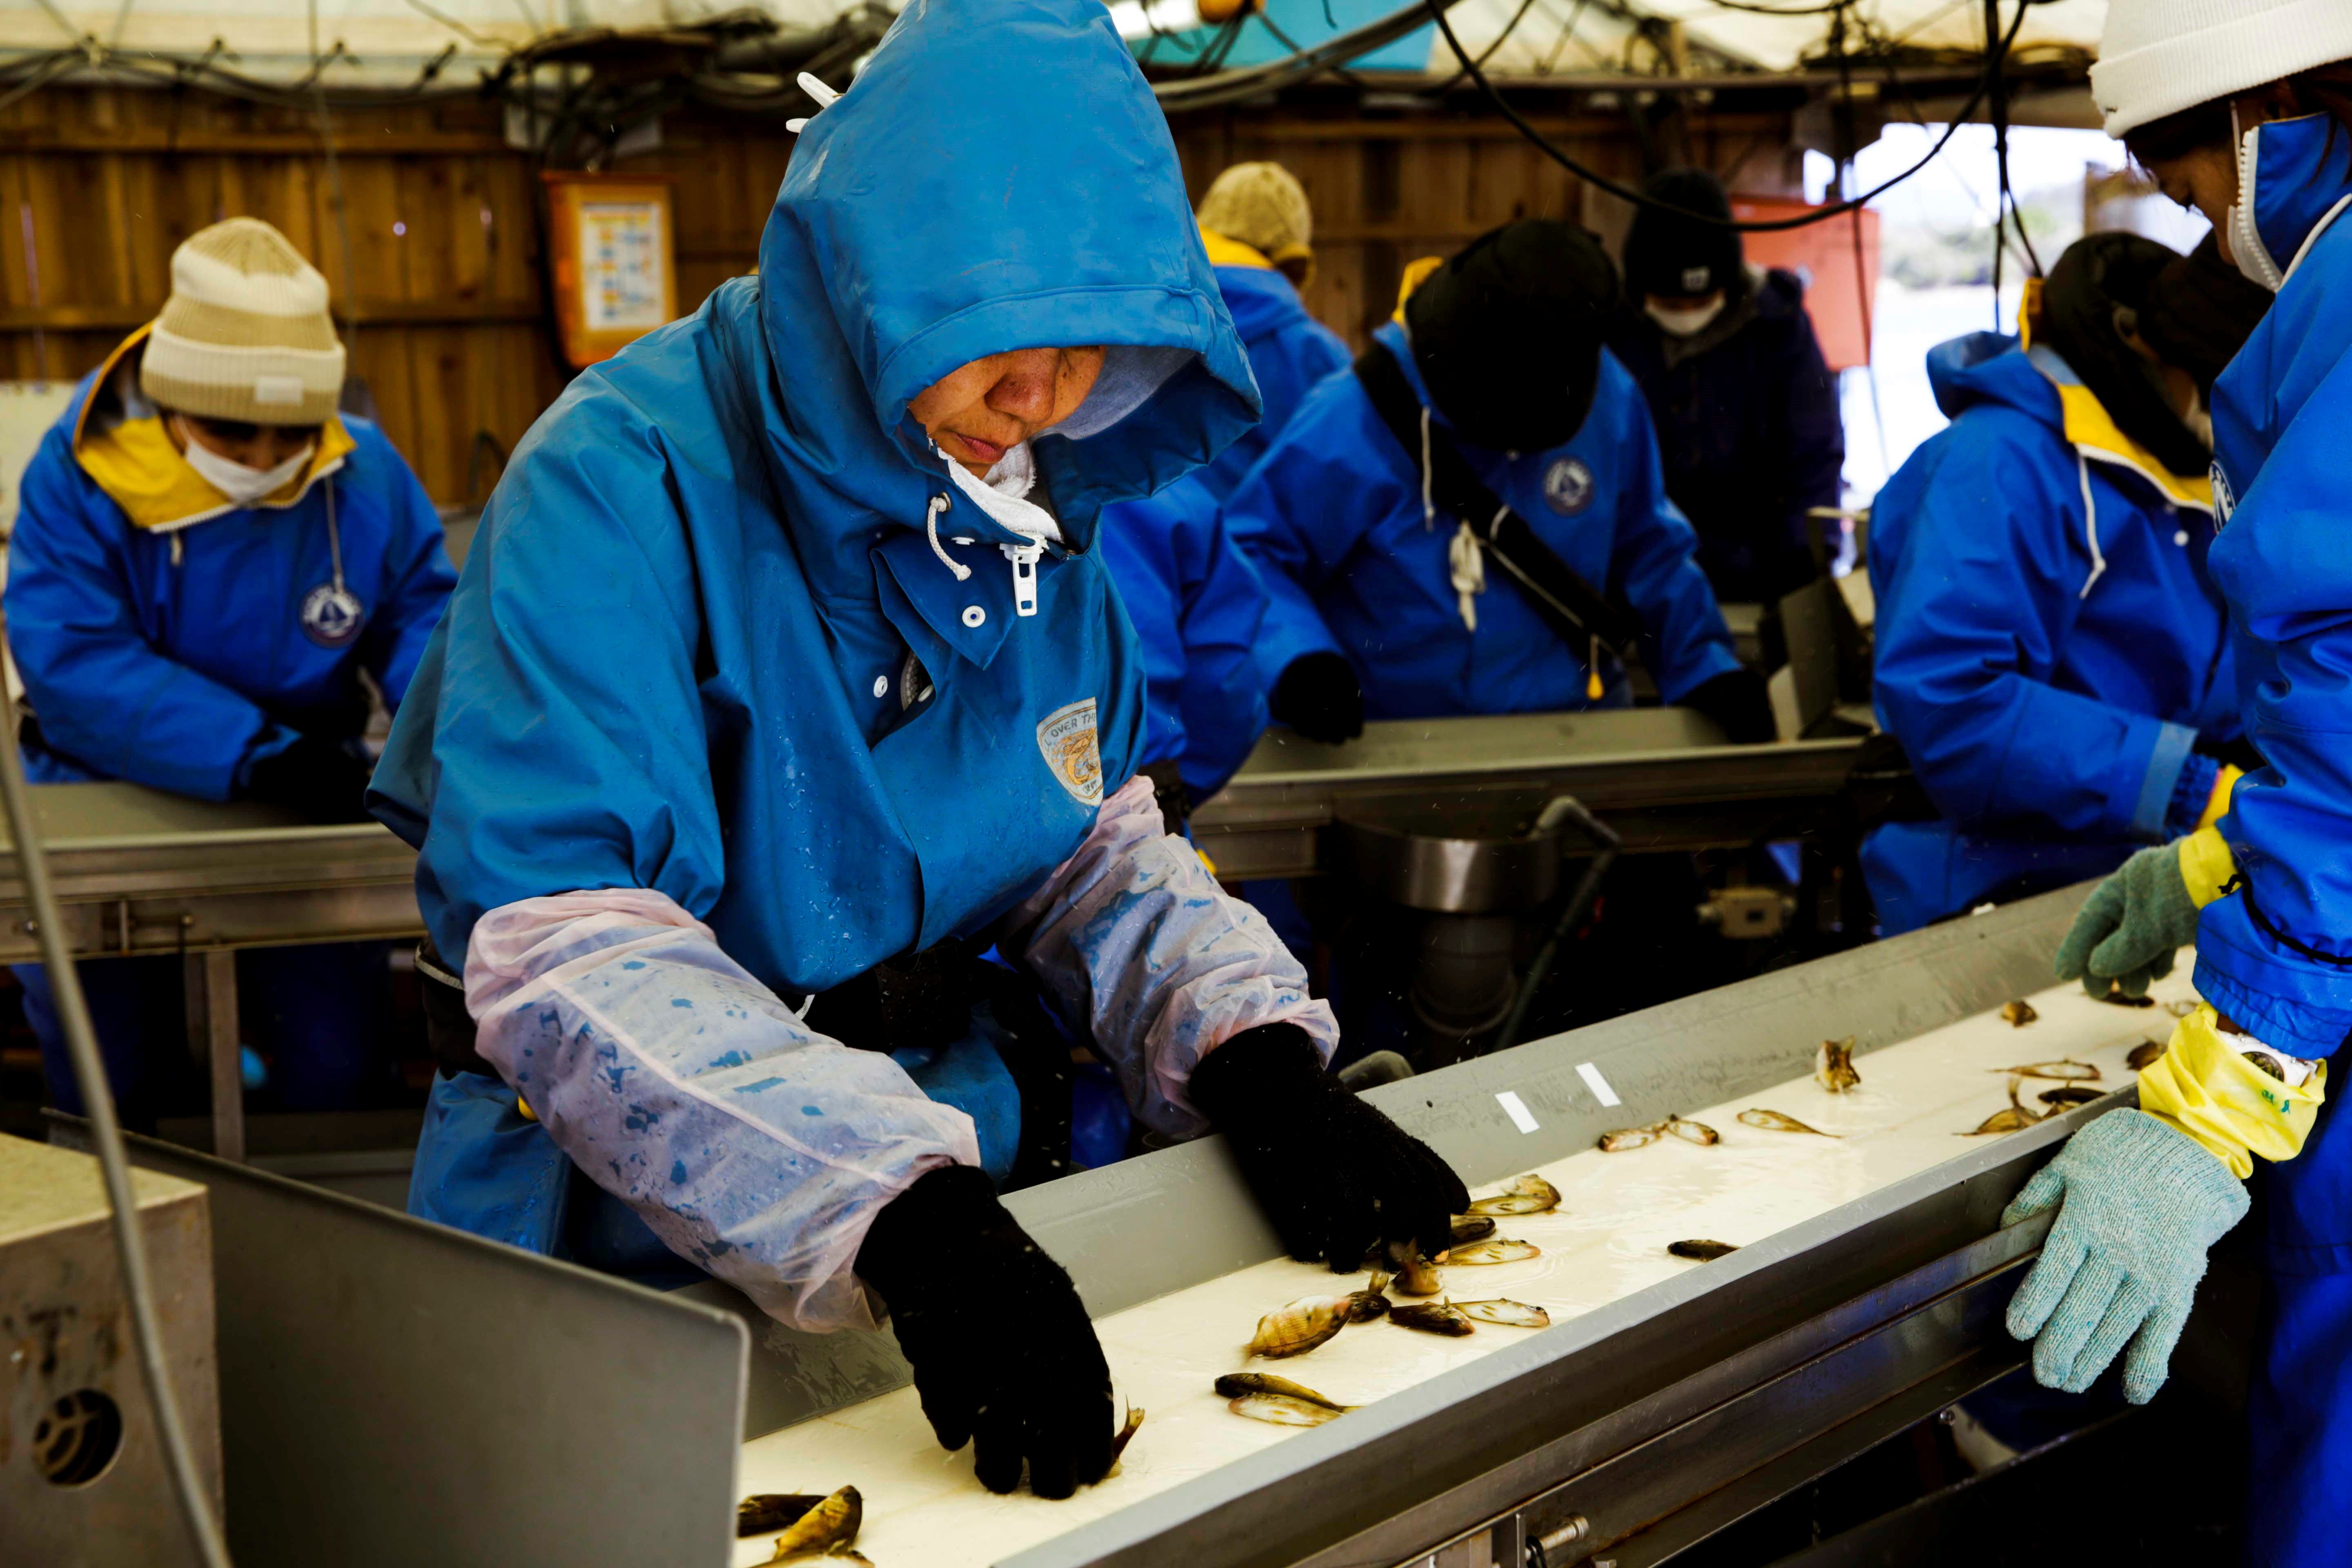 Pumped up automation: Fish farming in Japan adopts a new AI and IoT solution (Source: Microsoft Asia News Center)